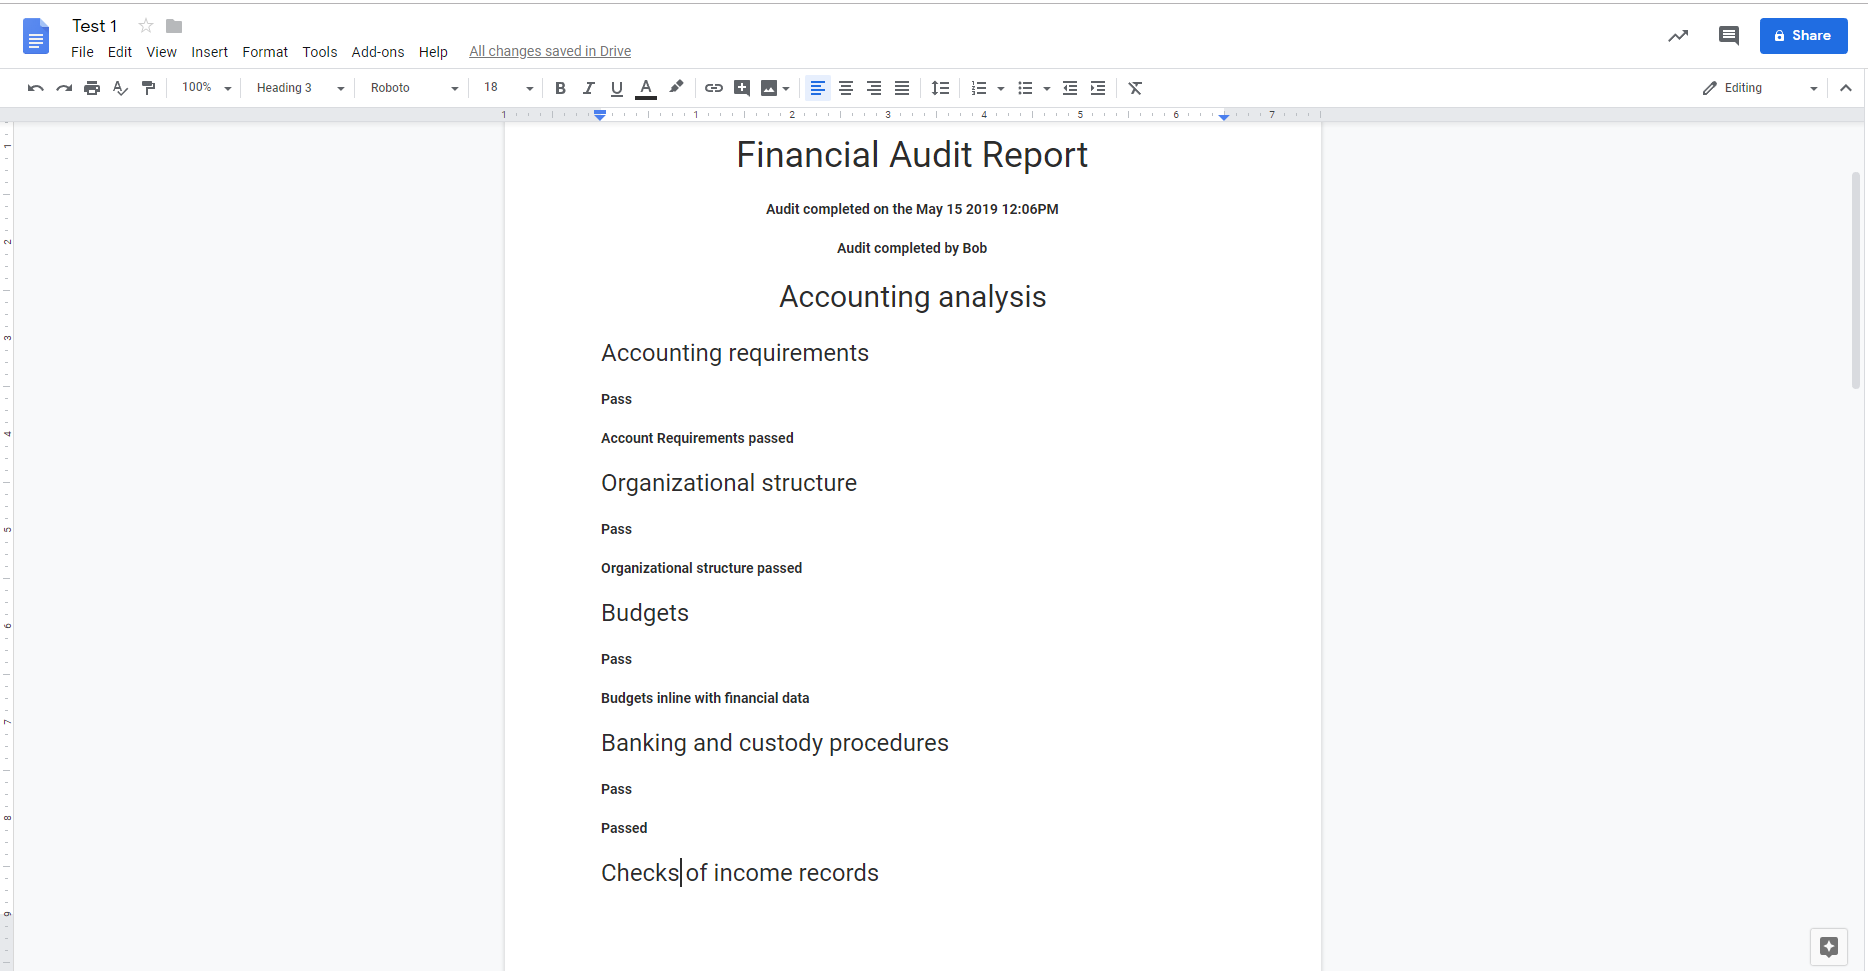 Your final report should come through to your google drive as a new document. The information in the google document report should match the information in your final report created in the Finance Audit Checklist.